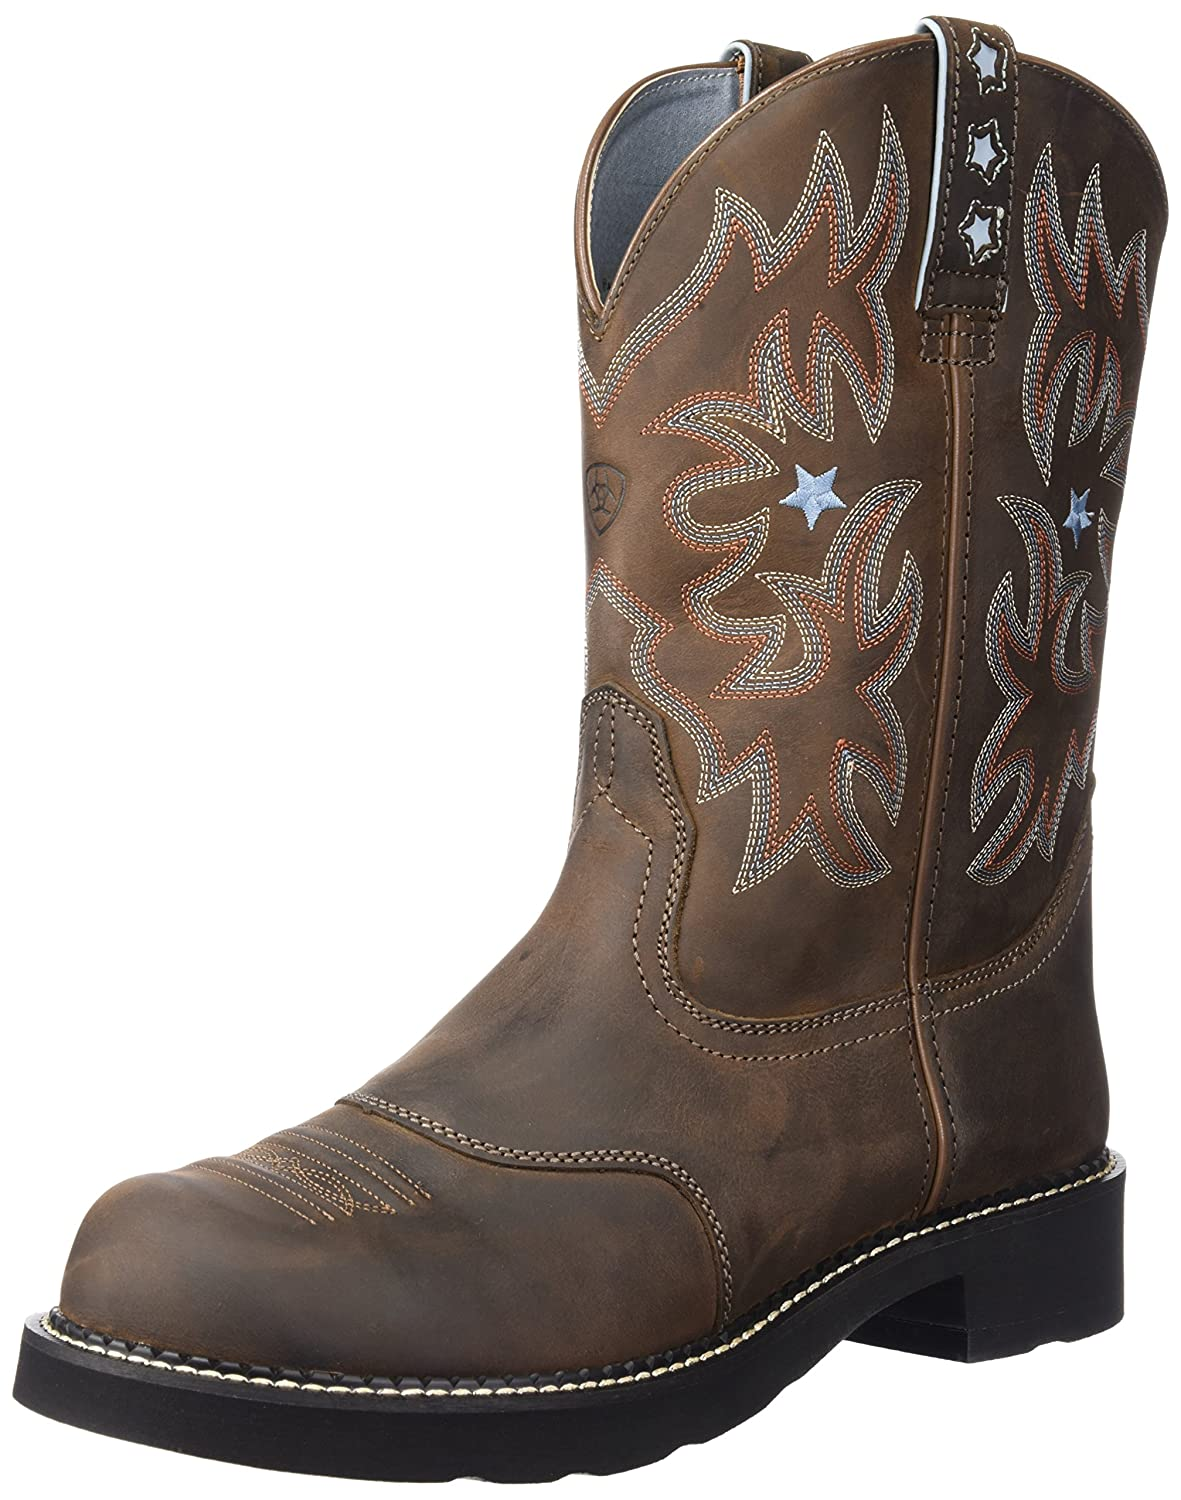 Ariat Women's Probaby Western Cowboy Boot B000EM18BO 7.5 B(M) US|Driftwood Brown